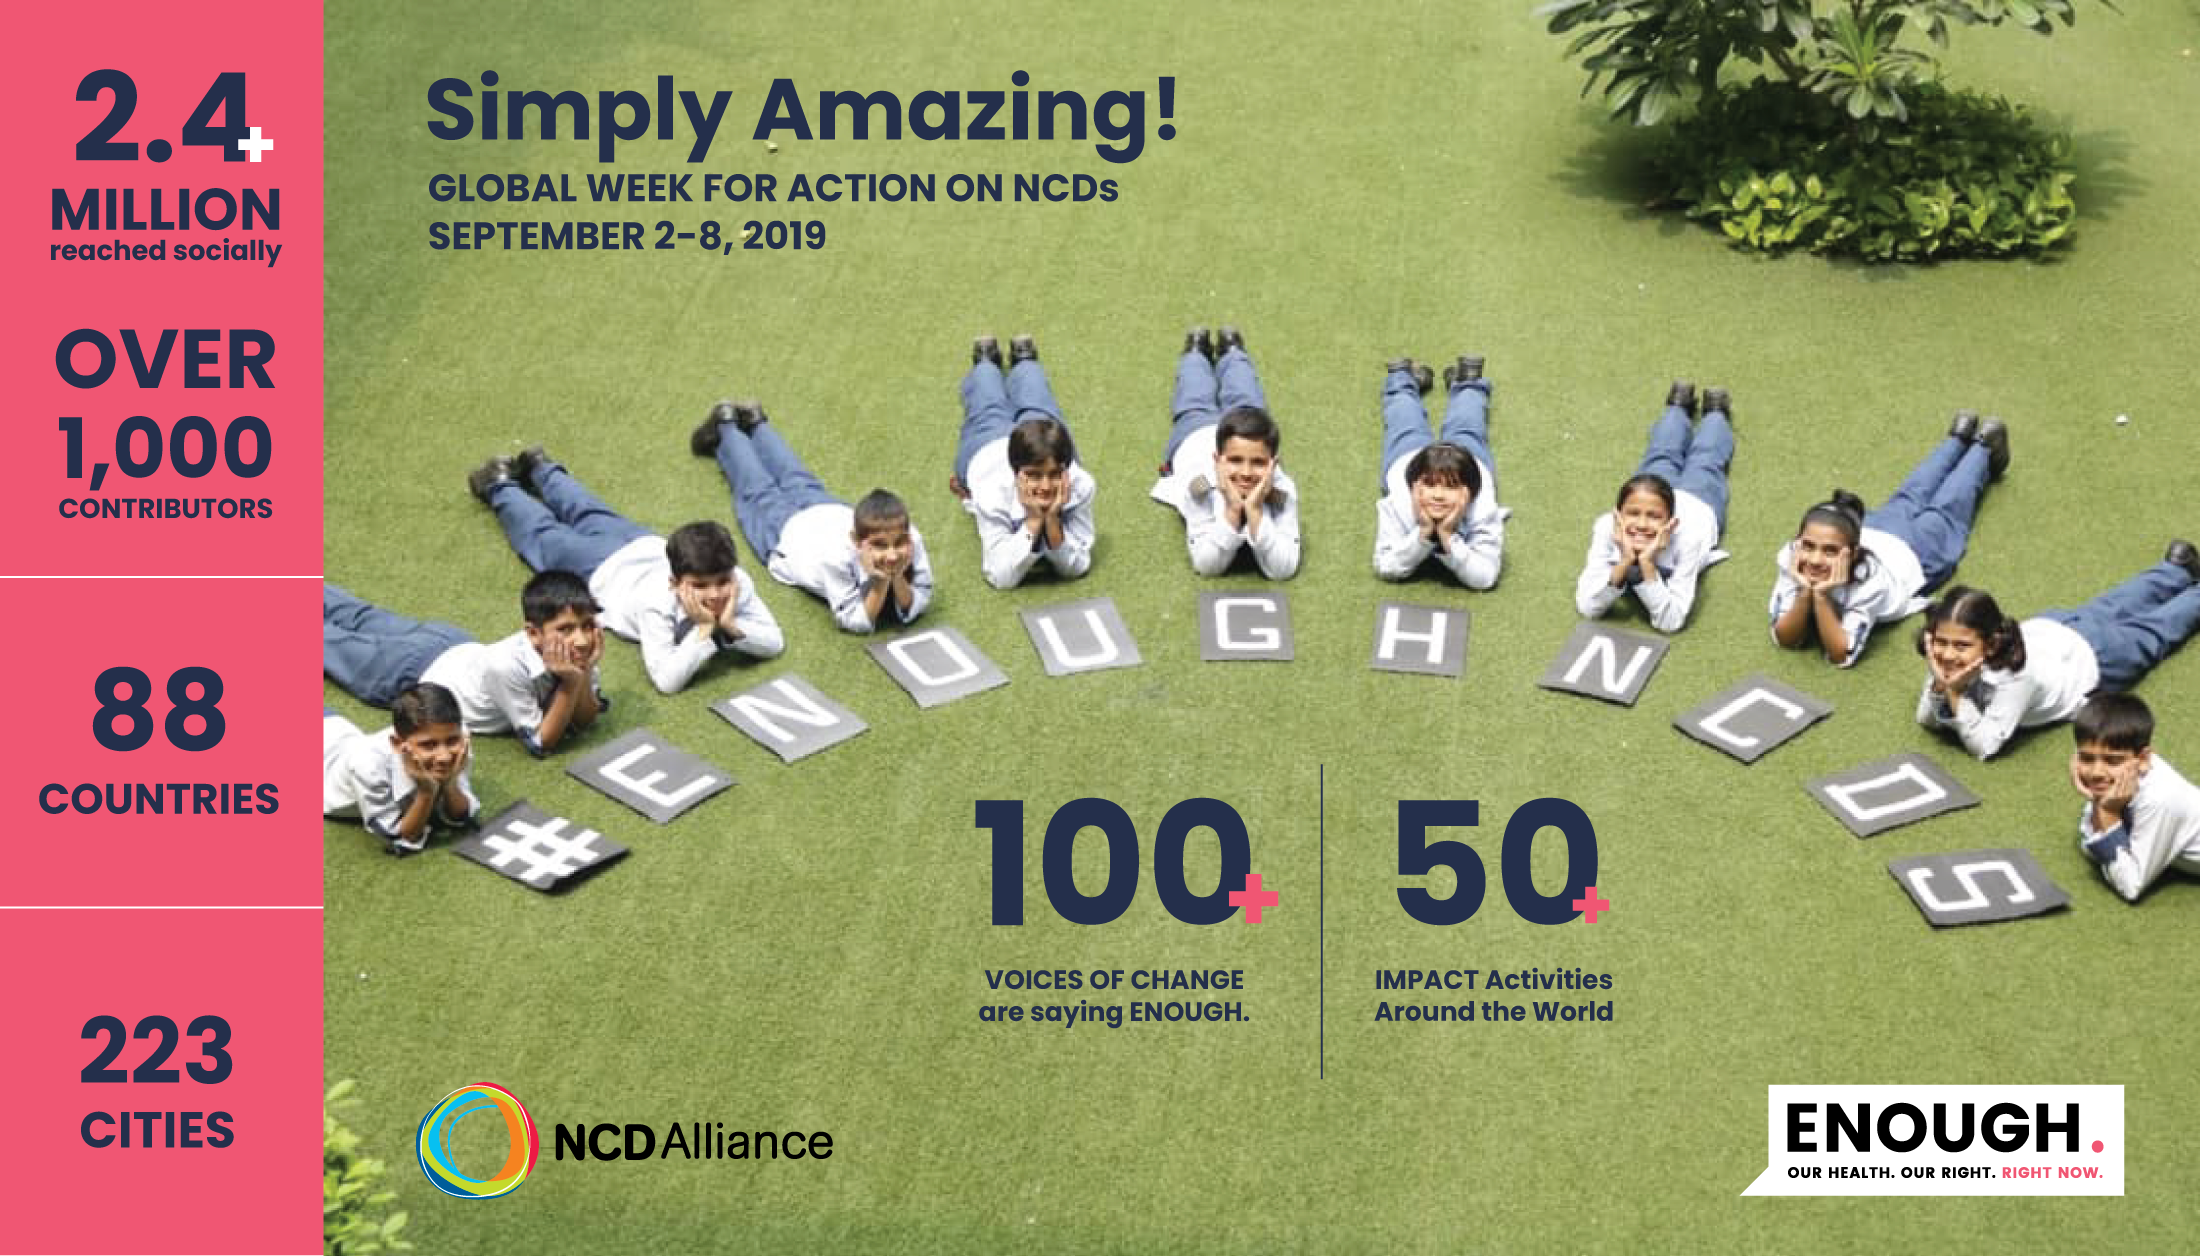 Initial statistics on the 2019 Week for Action on NCDs are impressive!